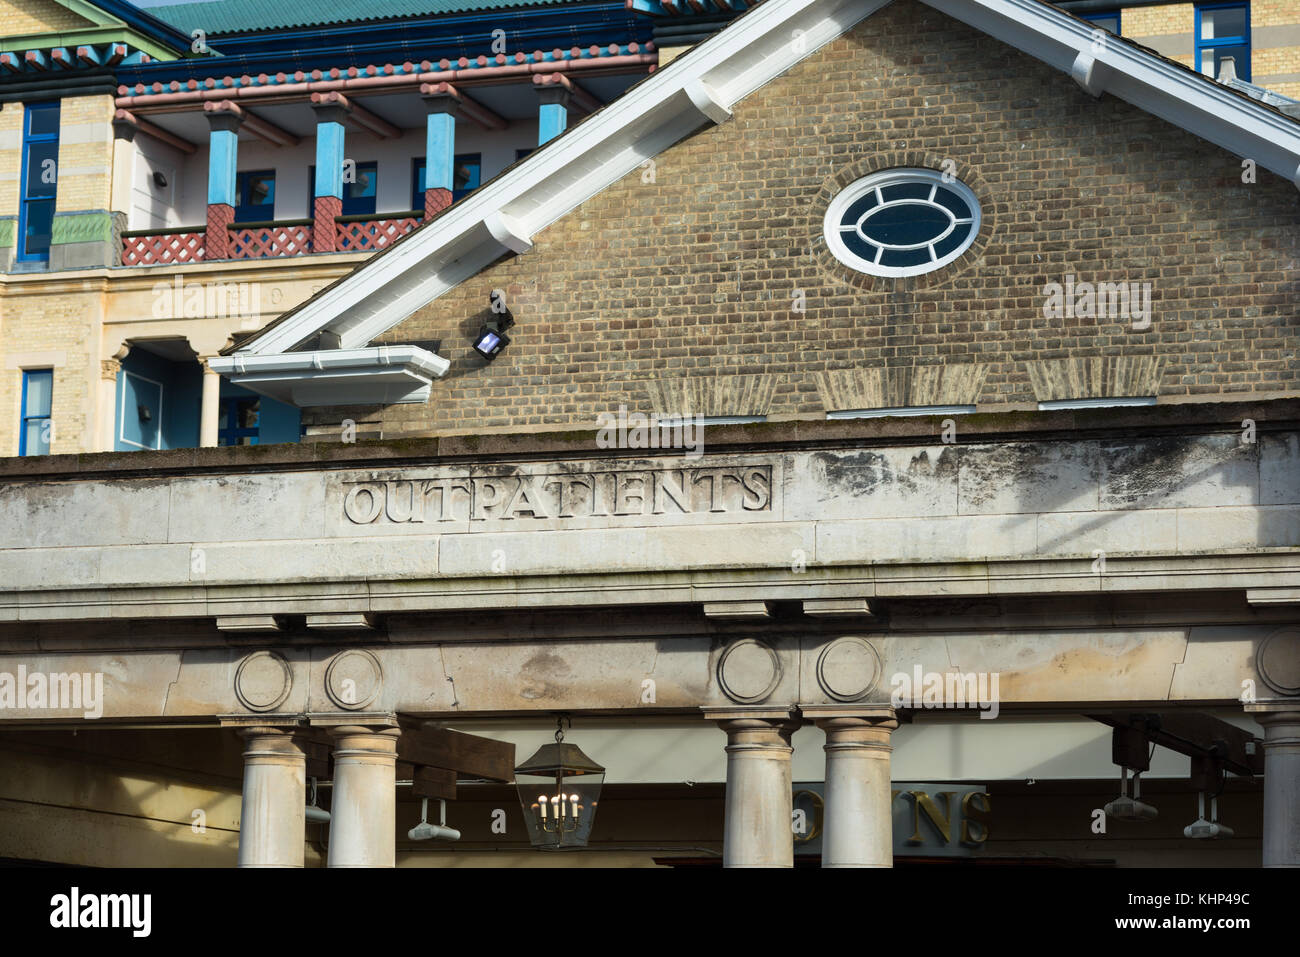 Outpatients sign of old Addenbrookes hospital building, now transformed into a bar. Cambridge, England, UK. - Stock Image